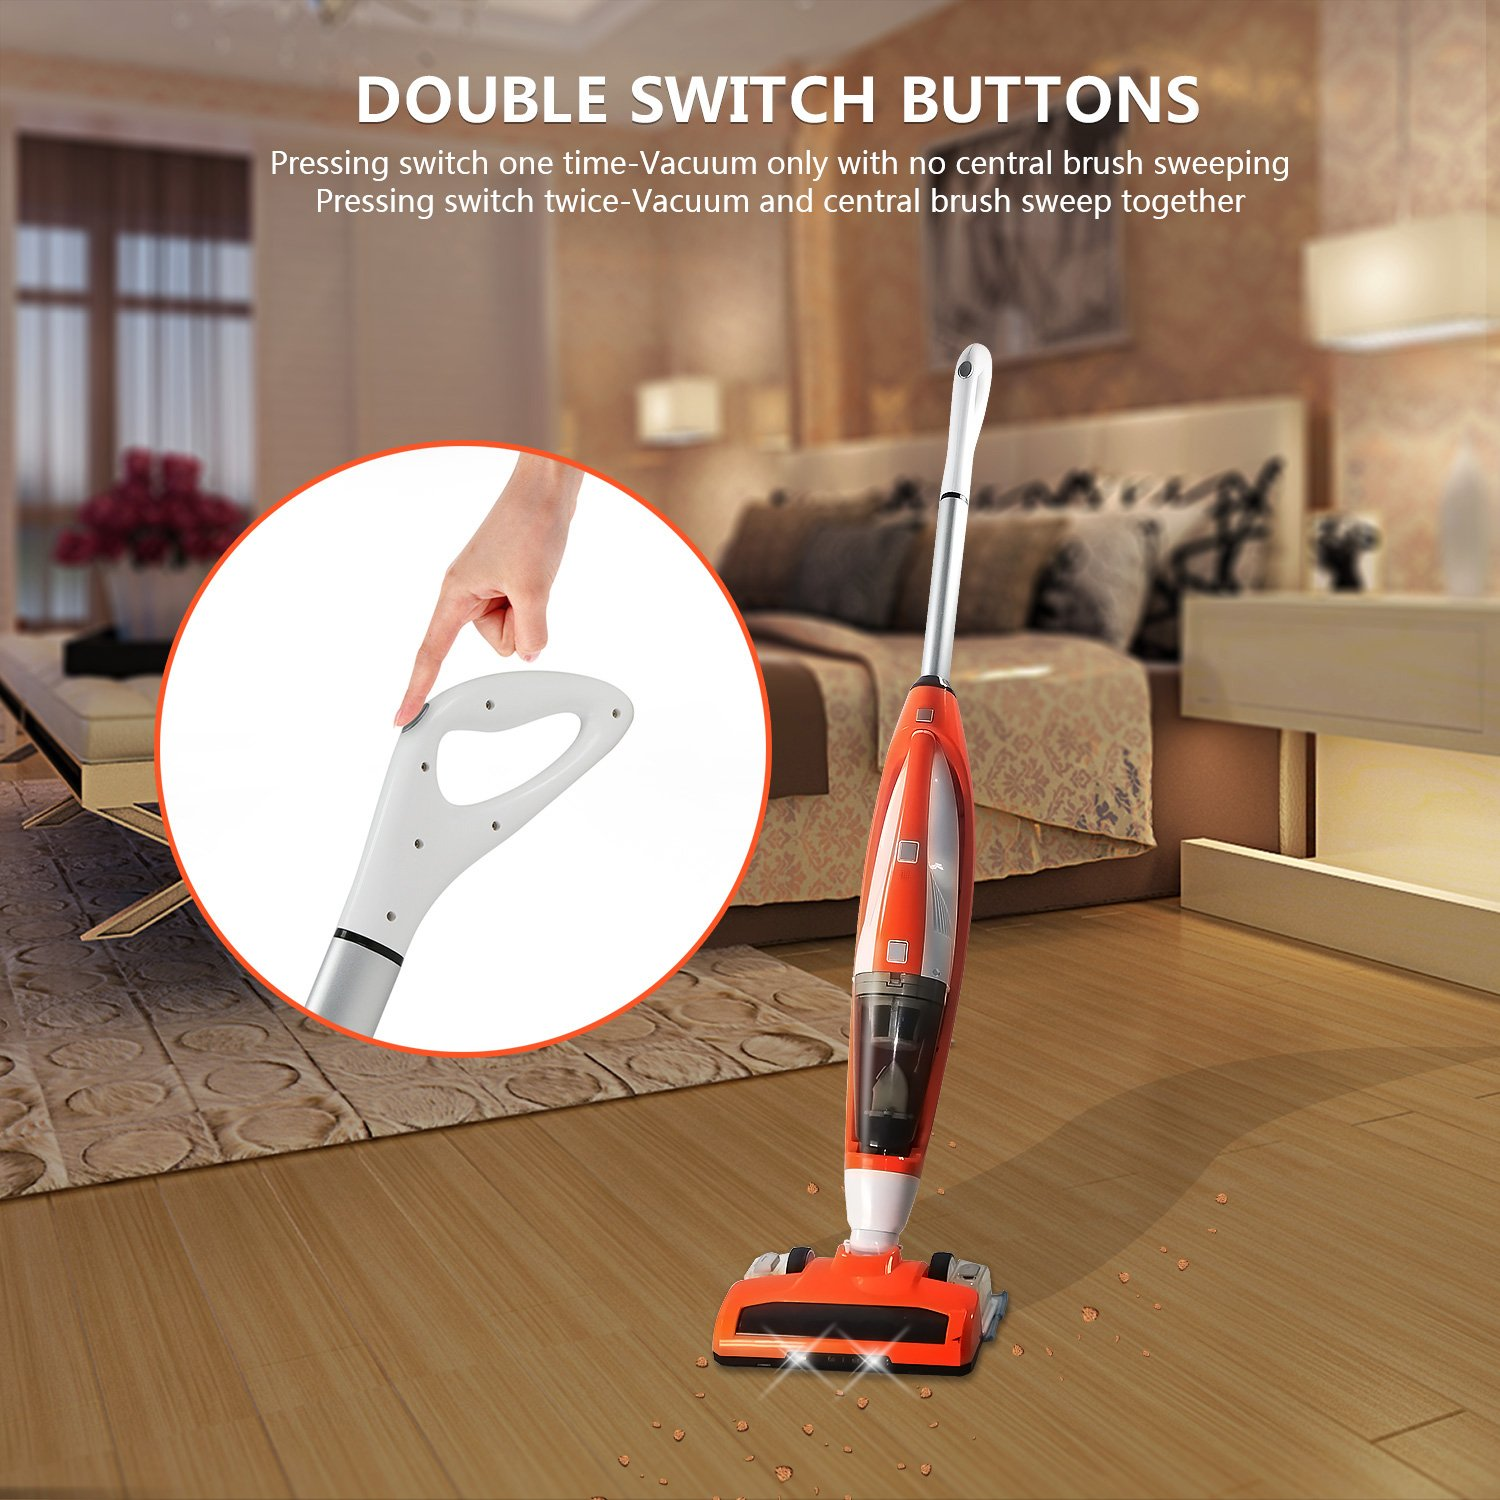 Evertop 3 In 1 Cordless Upright Vacuum Cleaner With This Is Gooda Vaccuum Wiper Switch Cable Operated There No Detachable Hand Hepa Filtration Lightweight Rechargeable Bagless Stick And